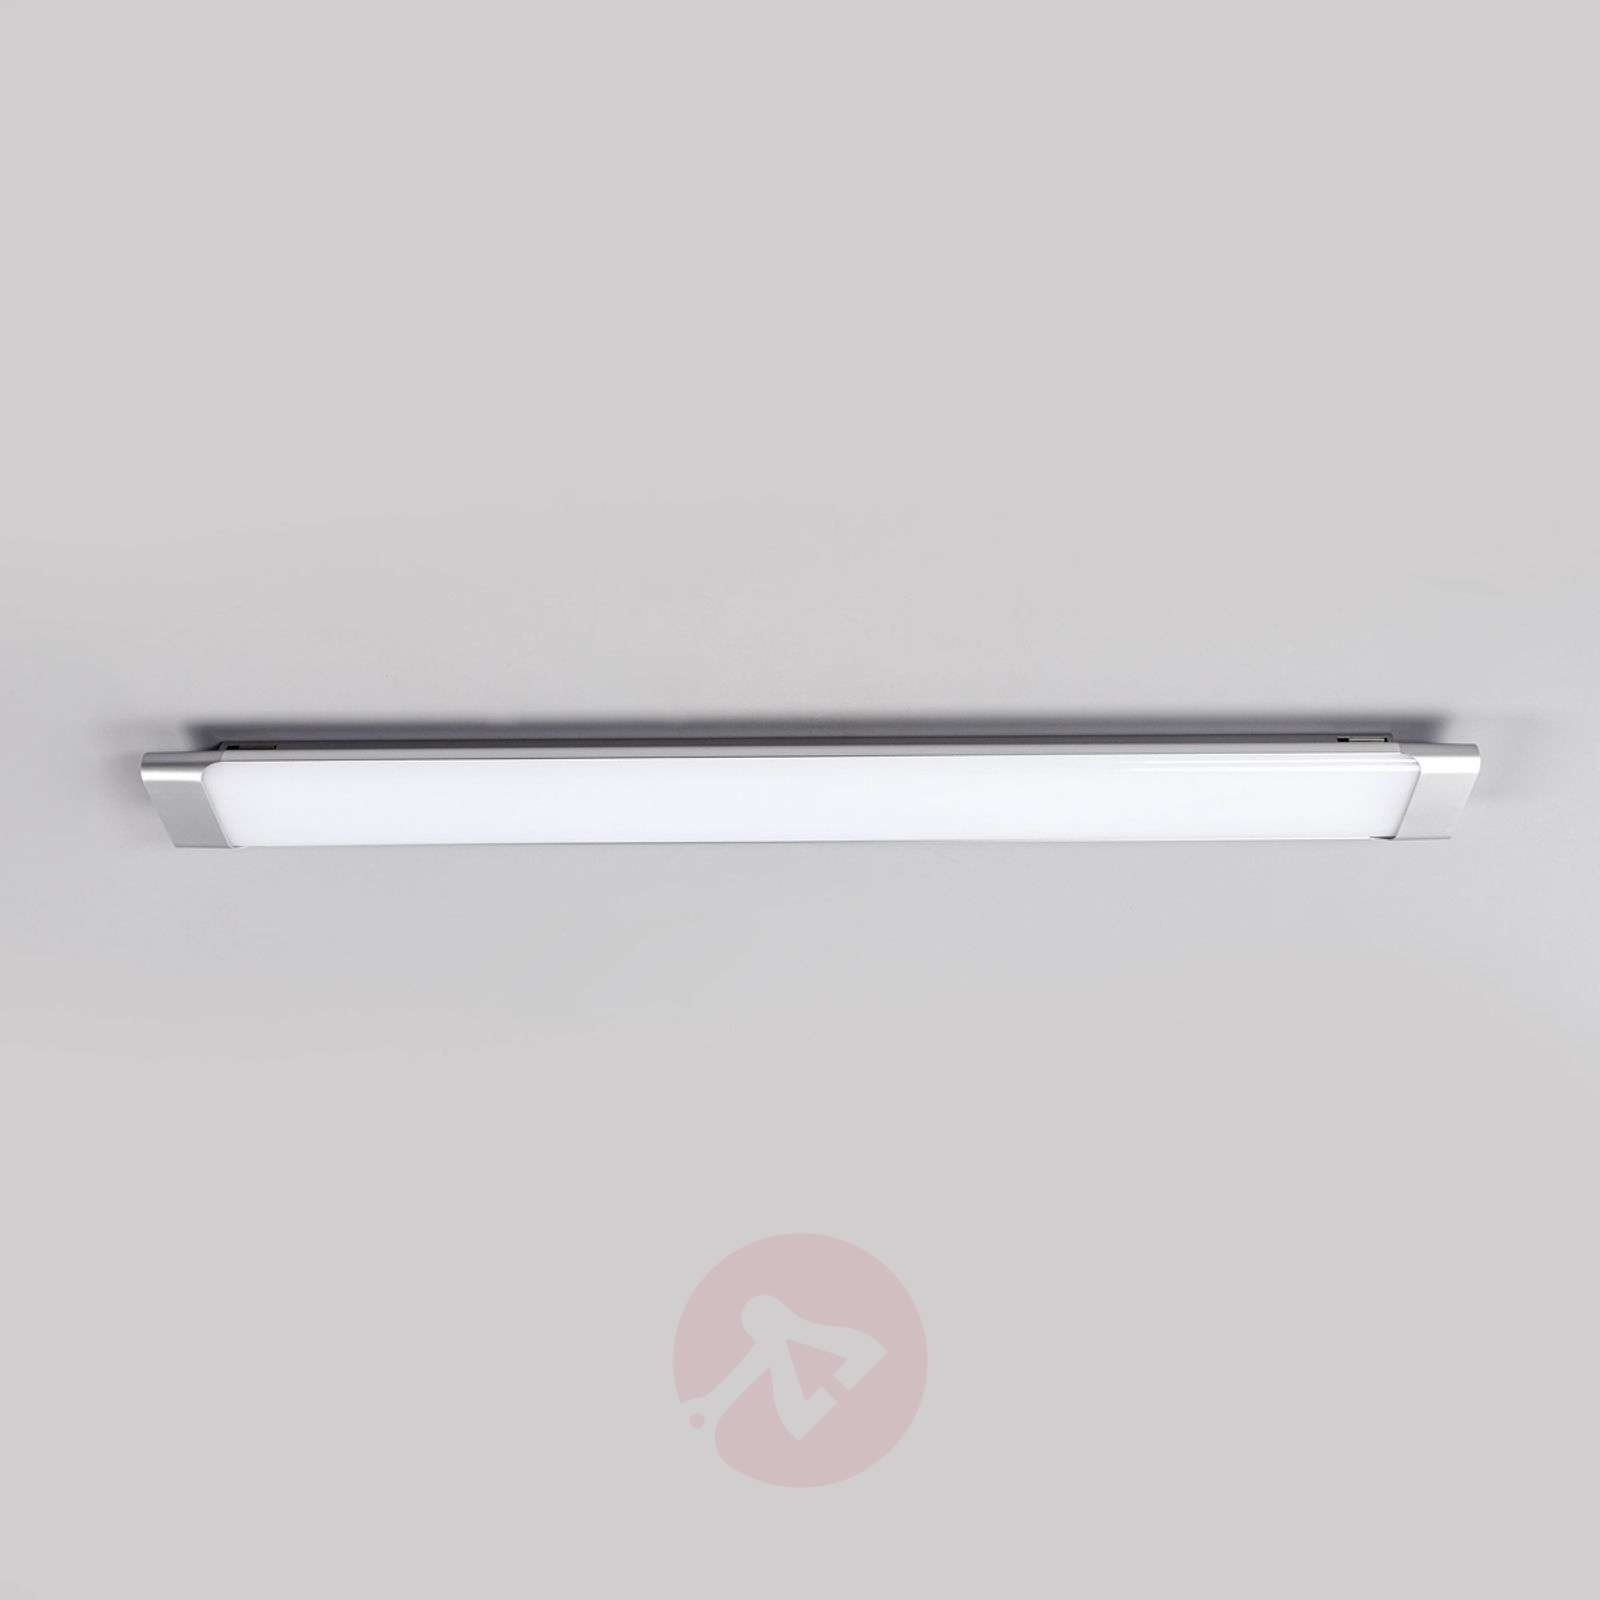 Practical LED ceiling light Vinca, 90 cm-9967006-01